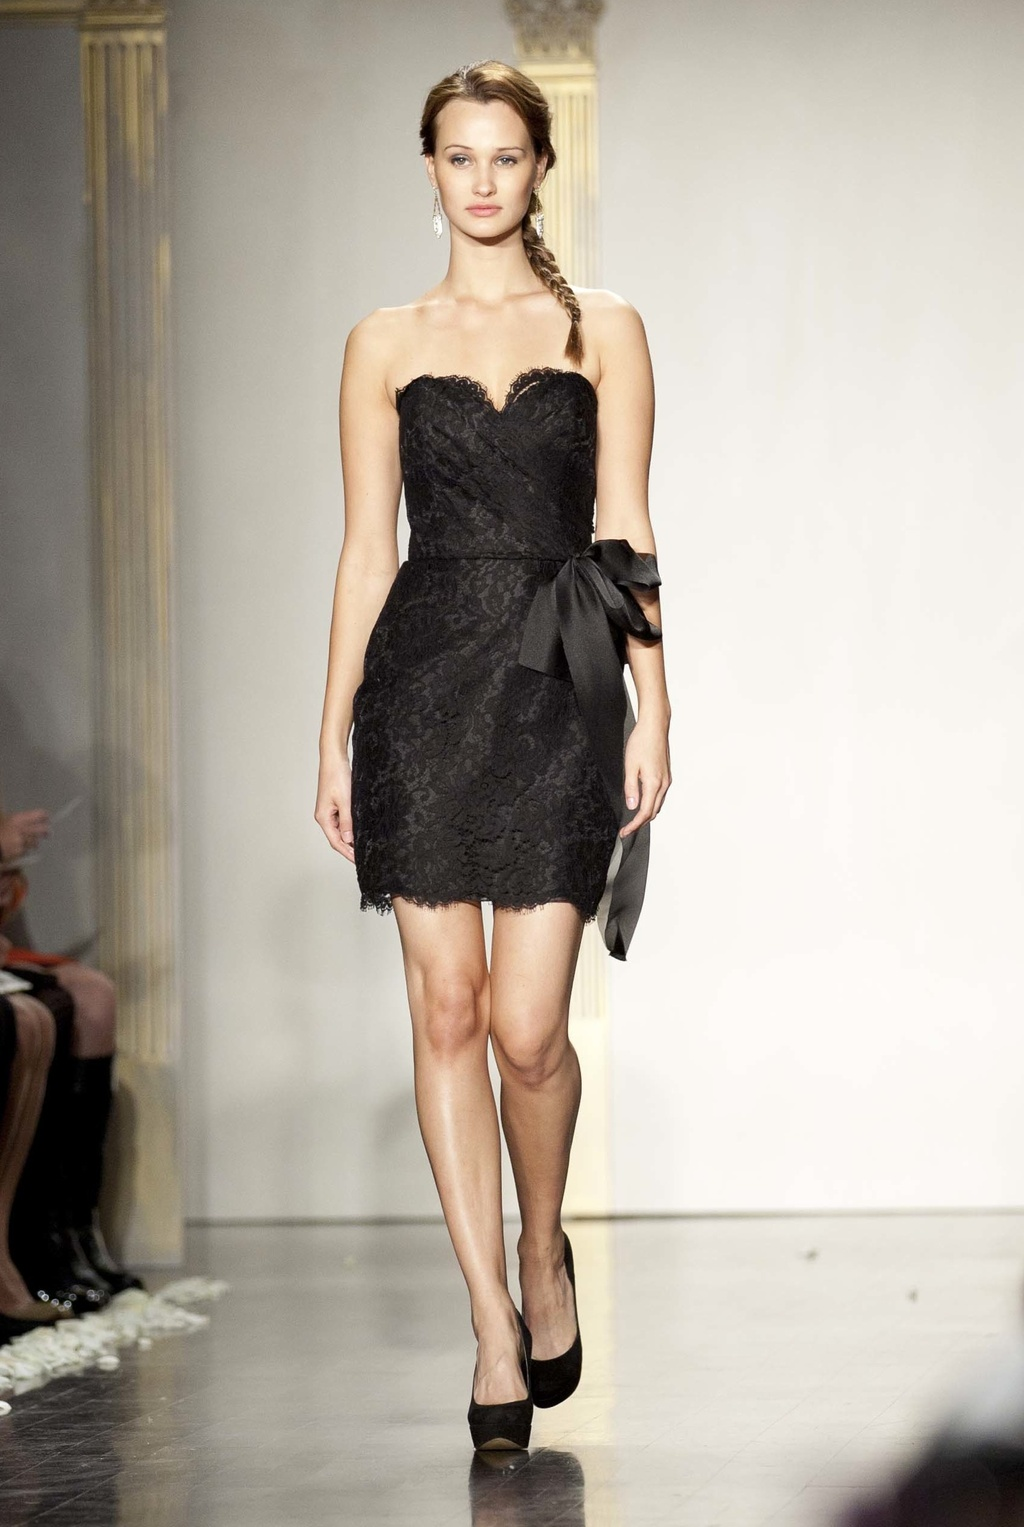 Bridesmaids-dresses-fall-2012-short-bridal-party-gowns-black-lace.full